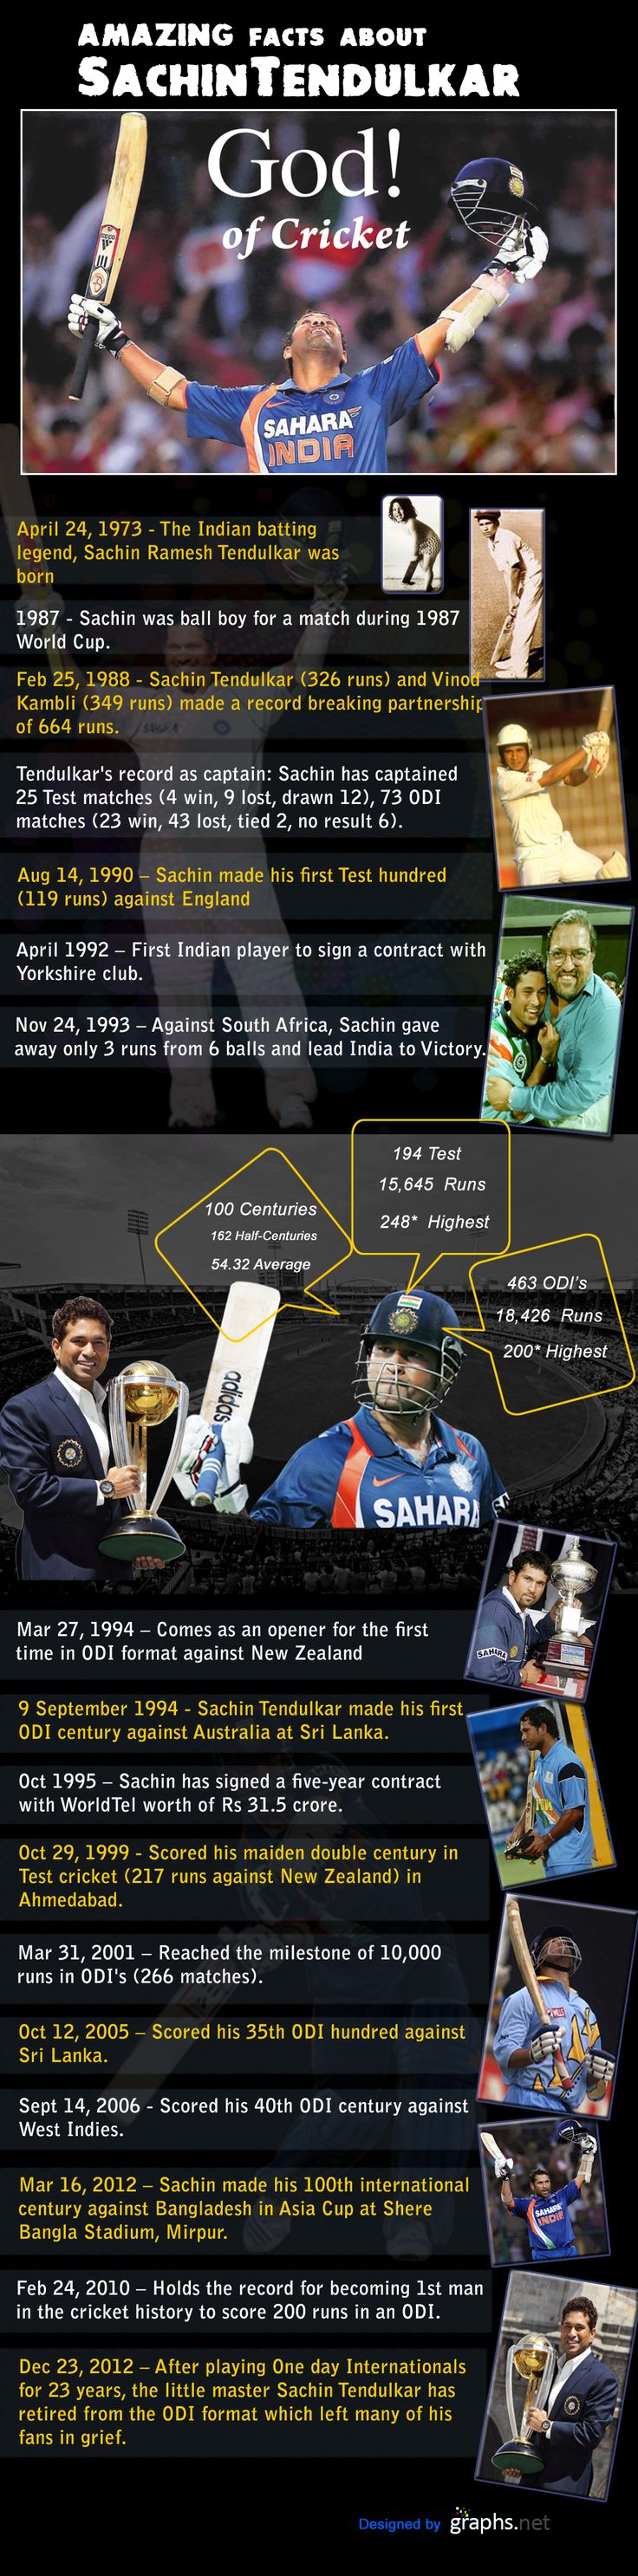 Amazing Facts about Sachin Tendulkar #Amazing #Facts #about #Sachin #Tendulkar #Sports #Cricket #Infographics